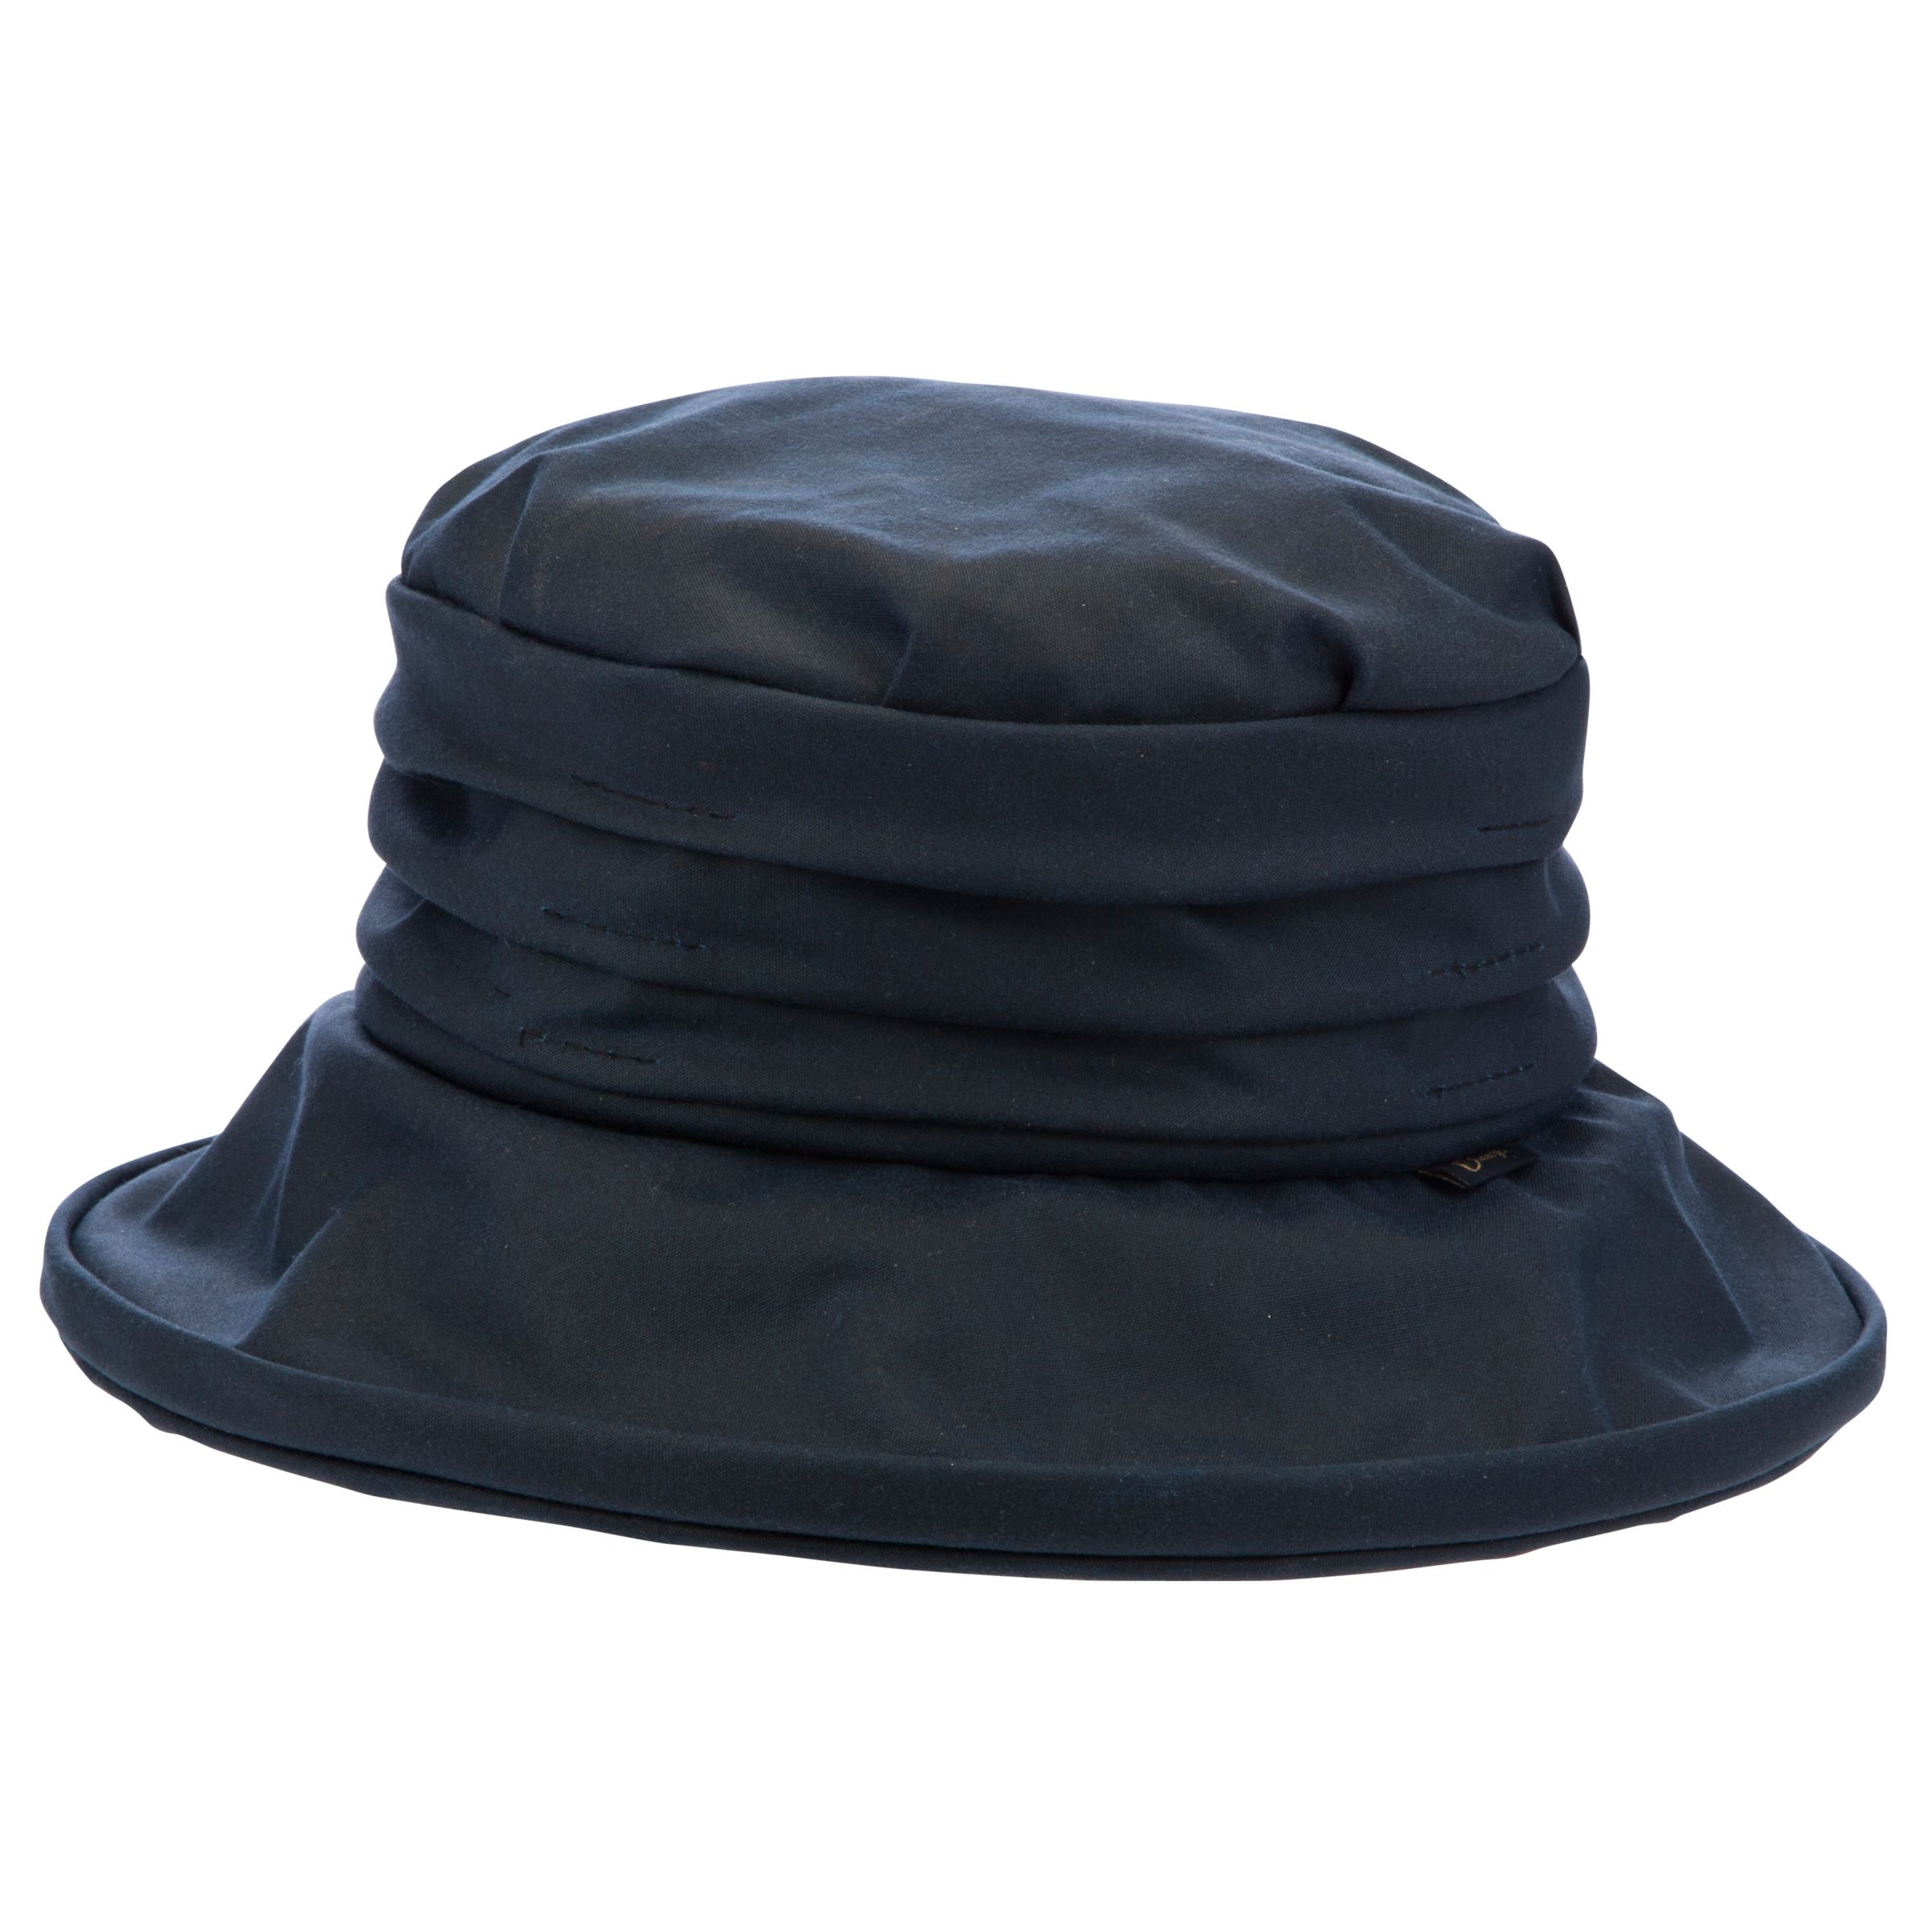 24fa4a2c671 Olney Annabelle Wax Rouched Hat, Navy at John Lewis & Partners